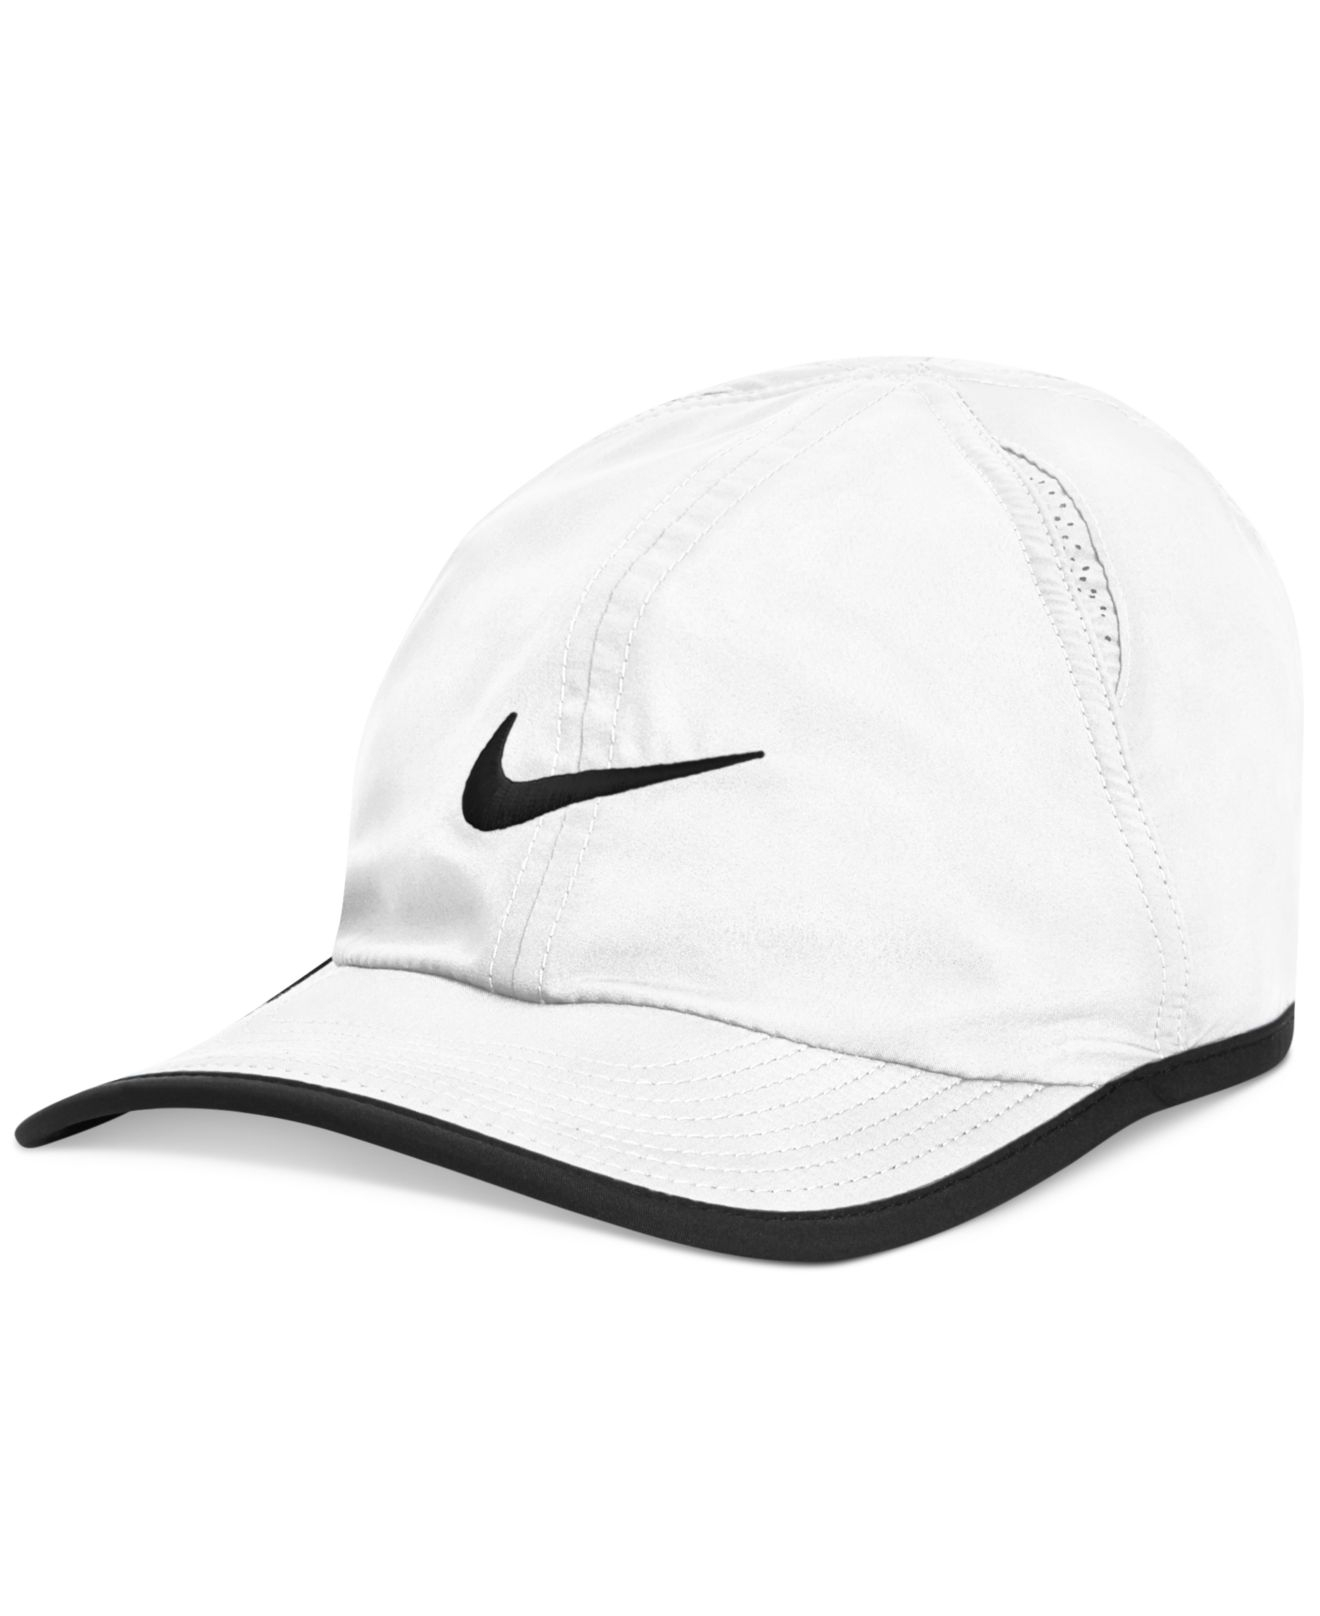 Lyst - Nike Dri-Fit Featherlight Performance Hat 2.0 in White for Men 5c07c14e4bc